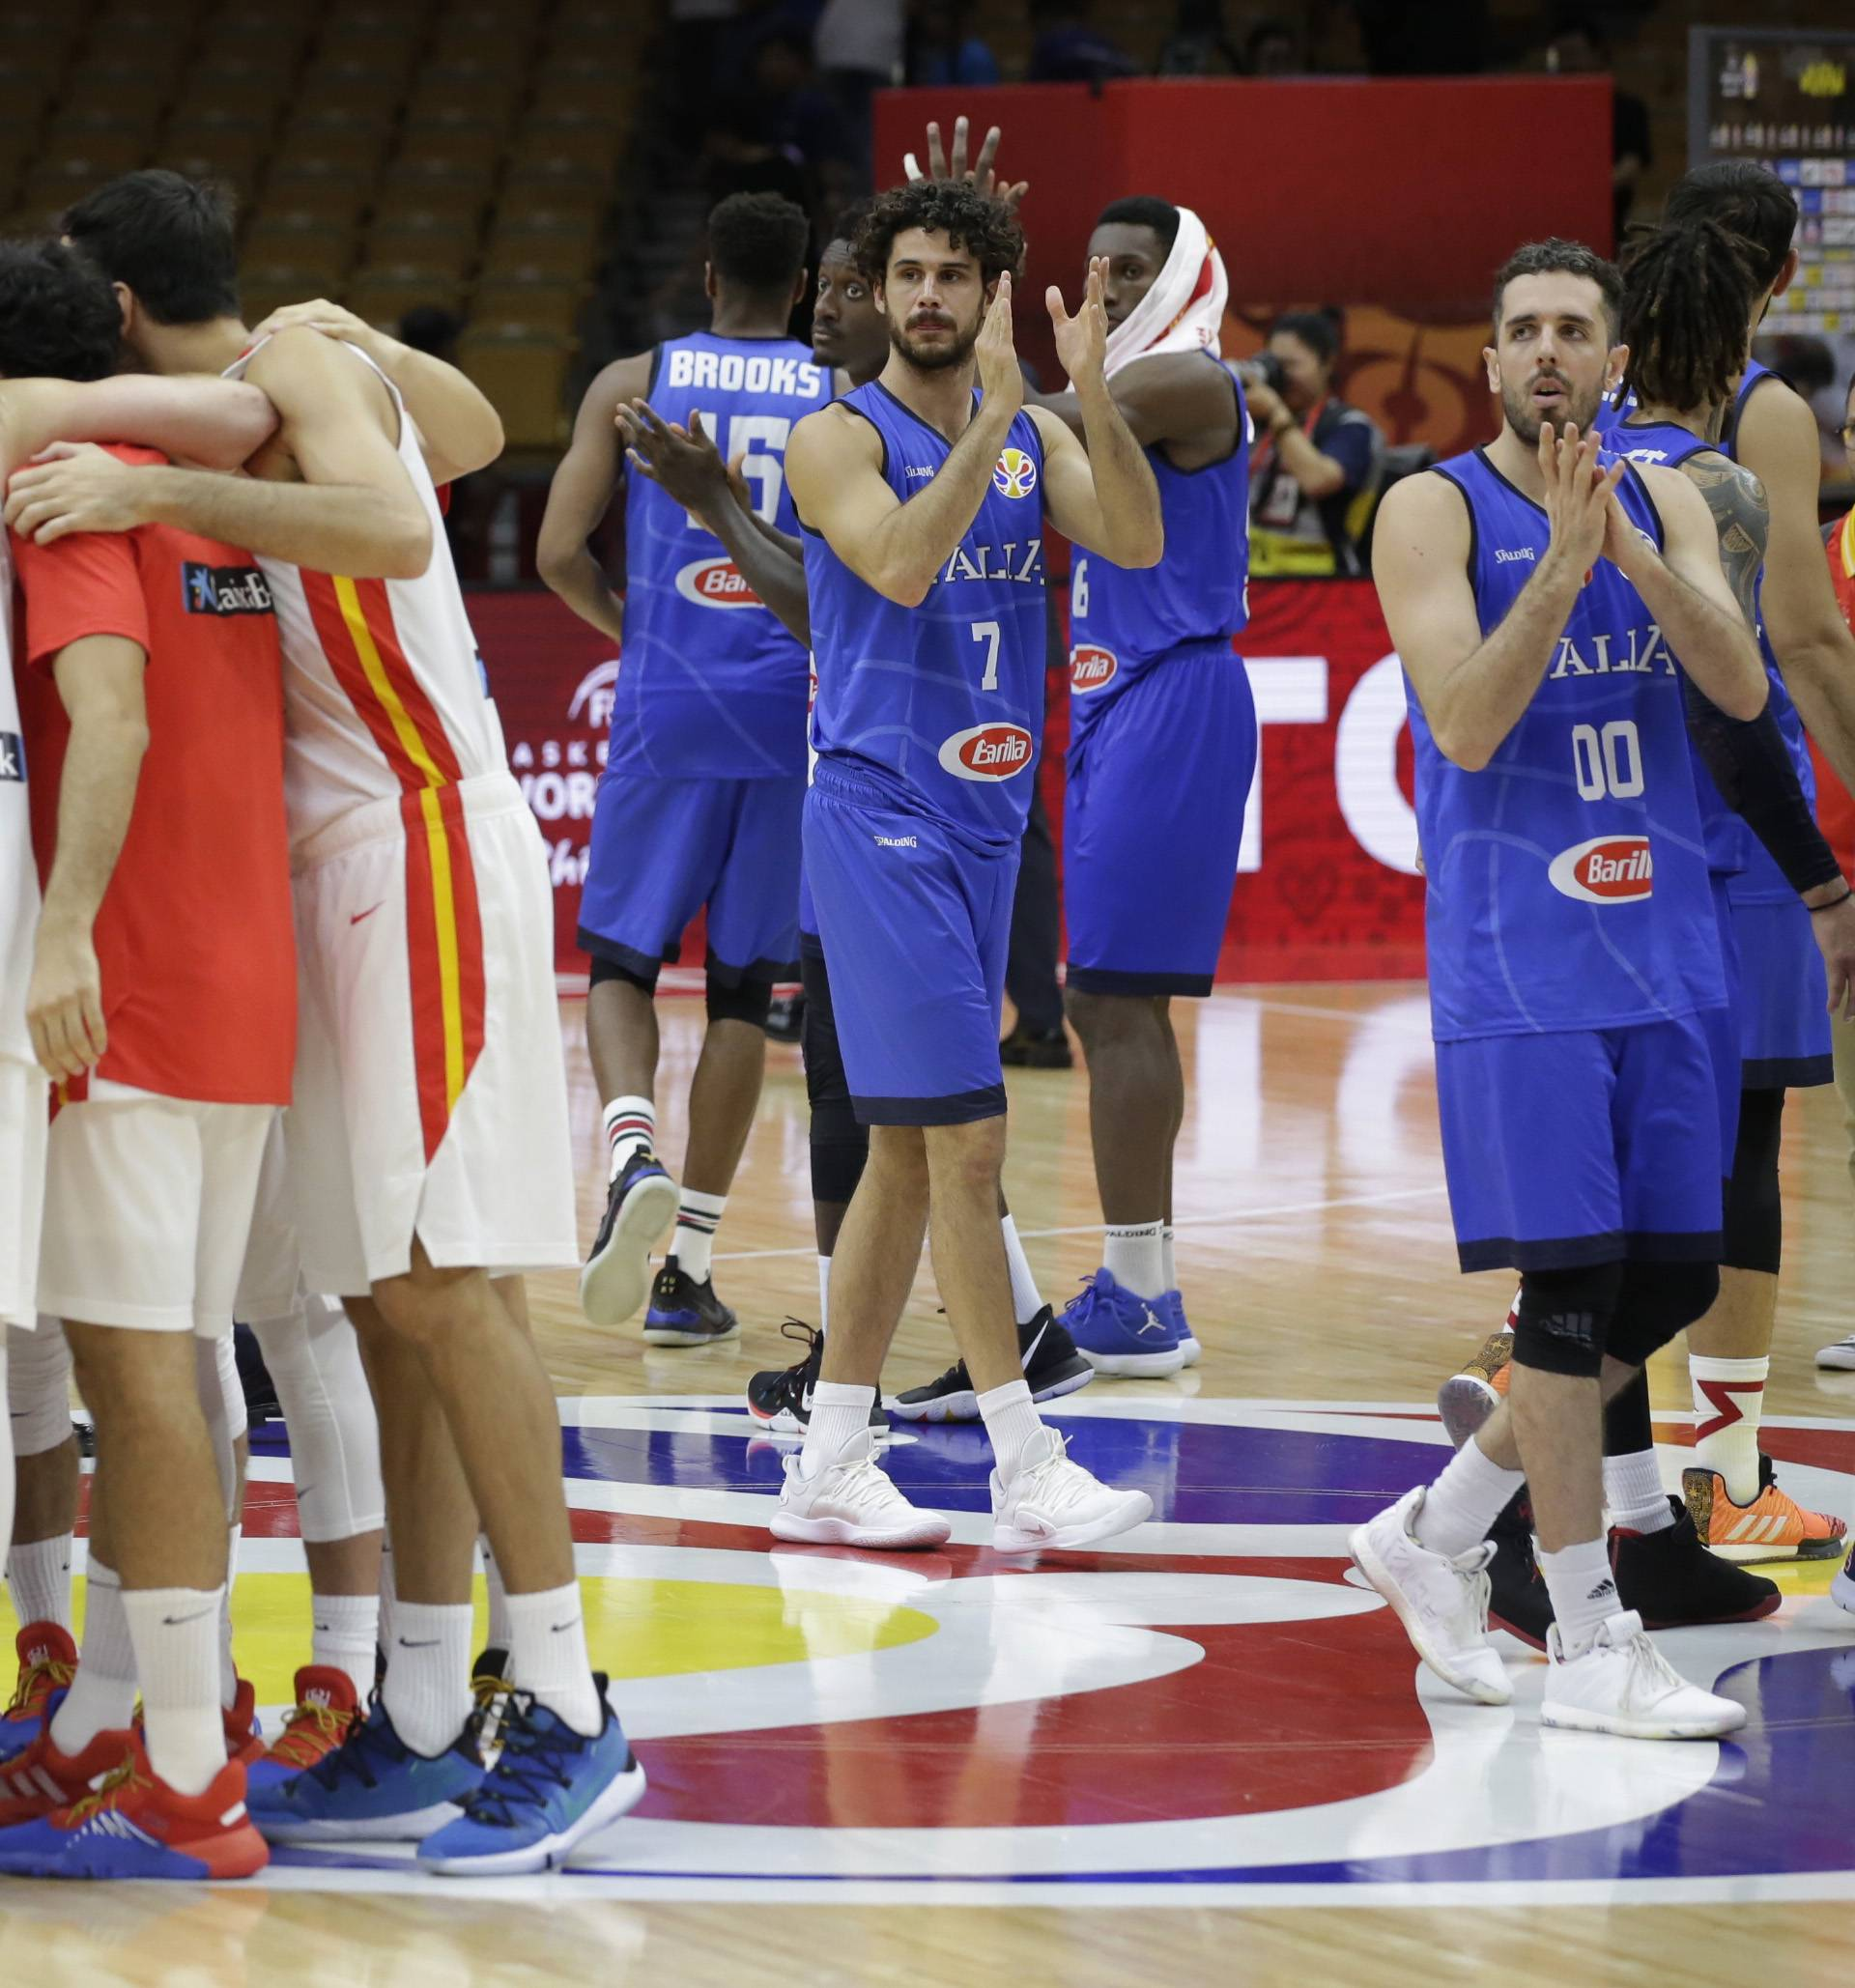 Basketball - FIBA World Cup - Second Round - Group J - Spain v Italy